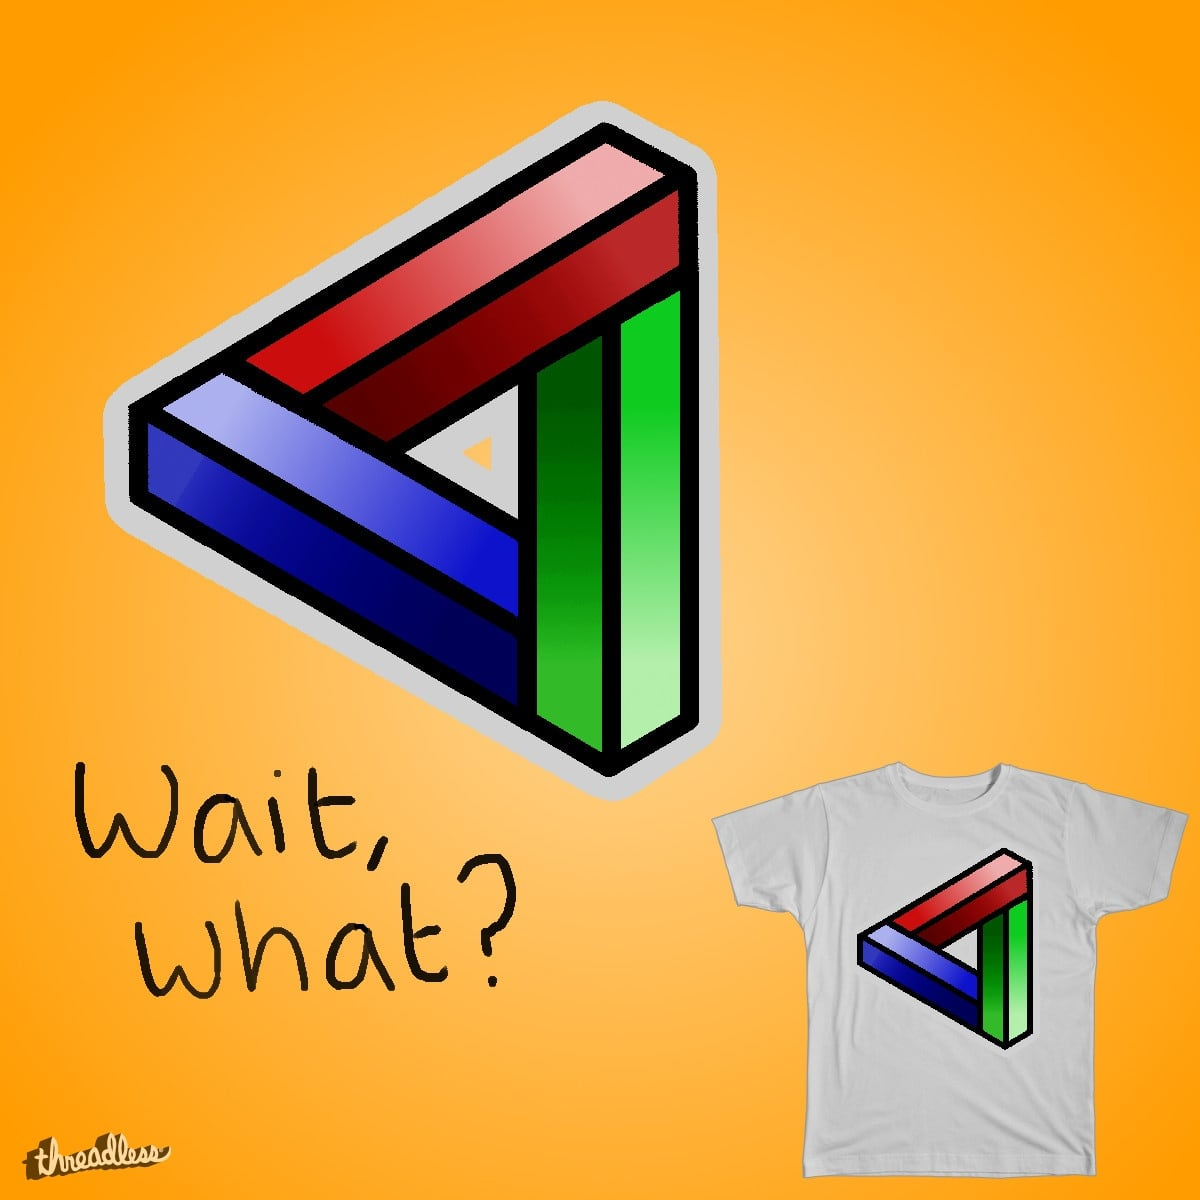 Wait, what? by Danwilz on Threadless